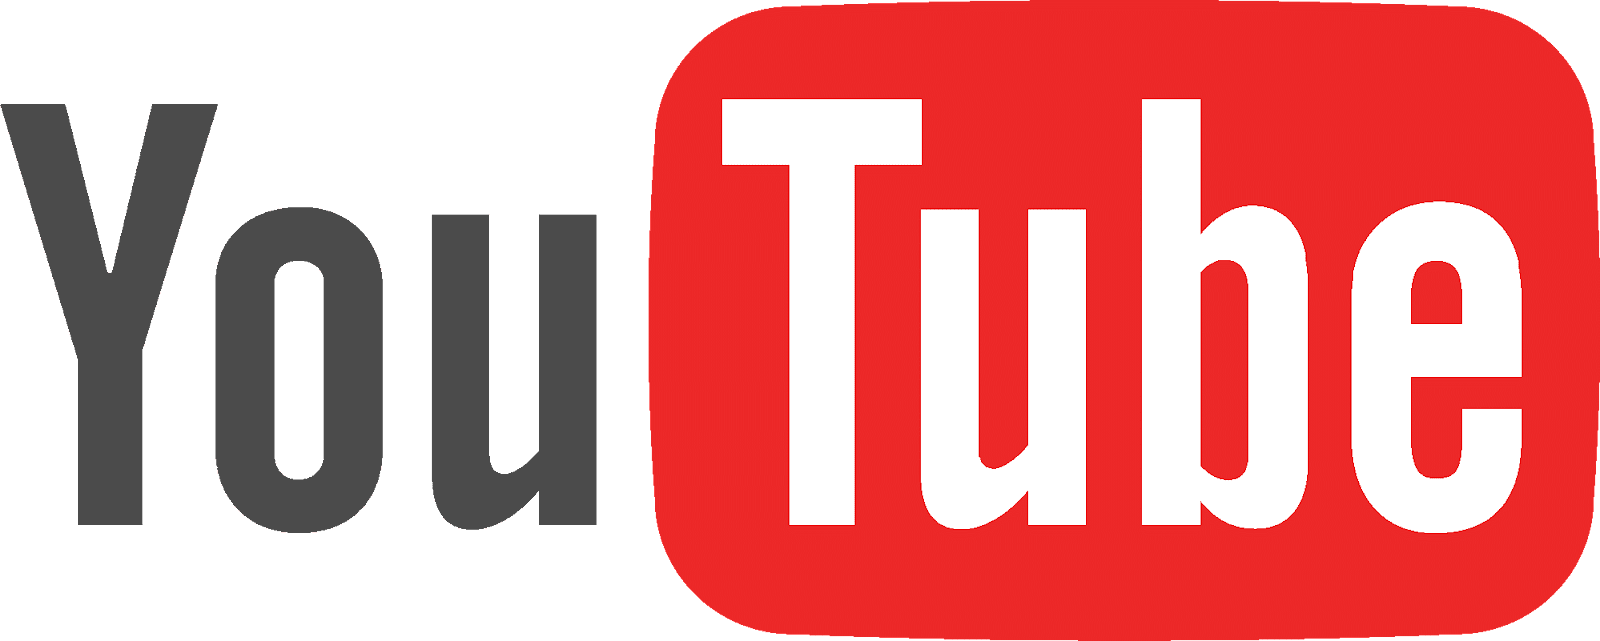 https://upload.wikimedia.org/wikipedia/commons/9/93/Solid_color_You_Tube_logo.png